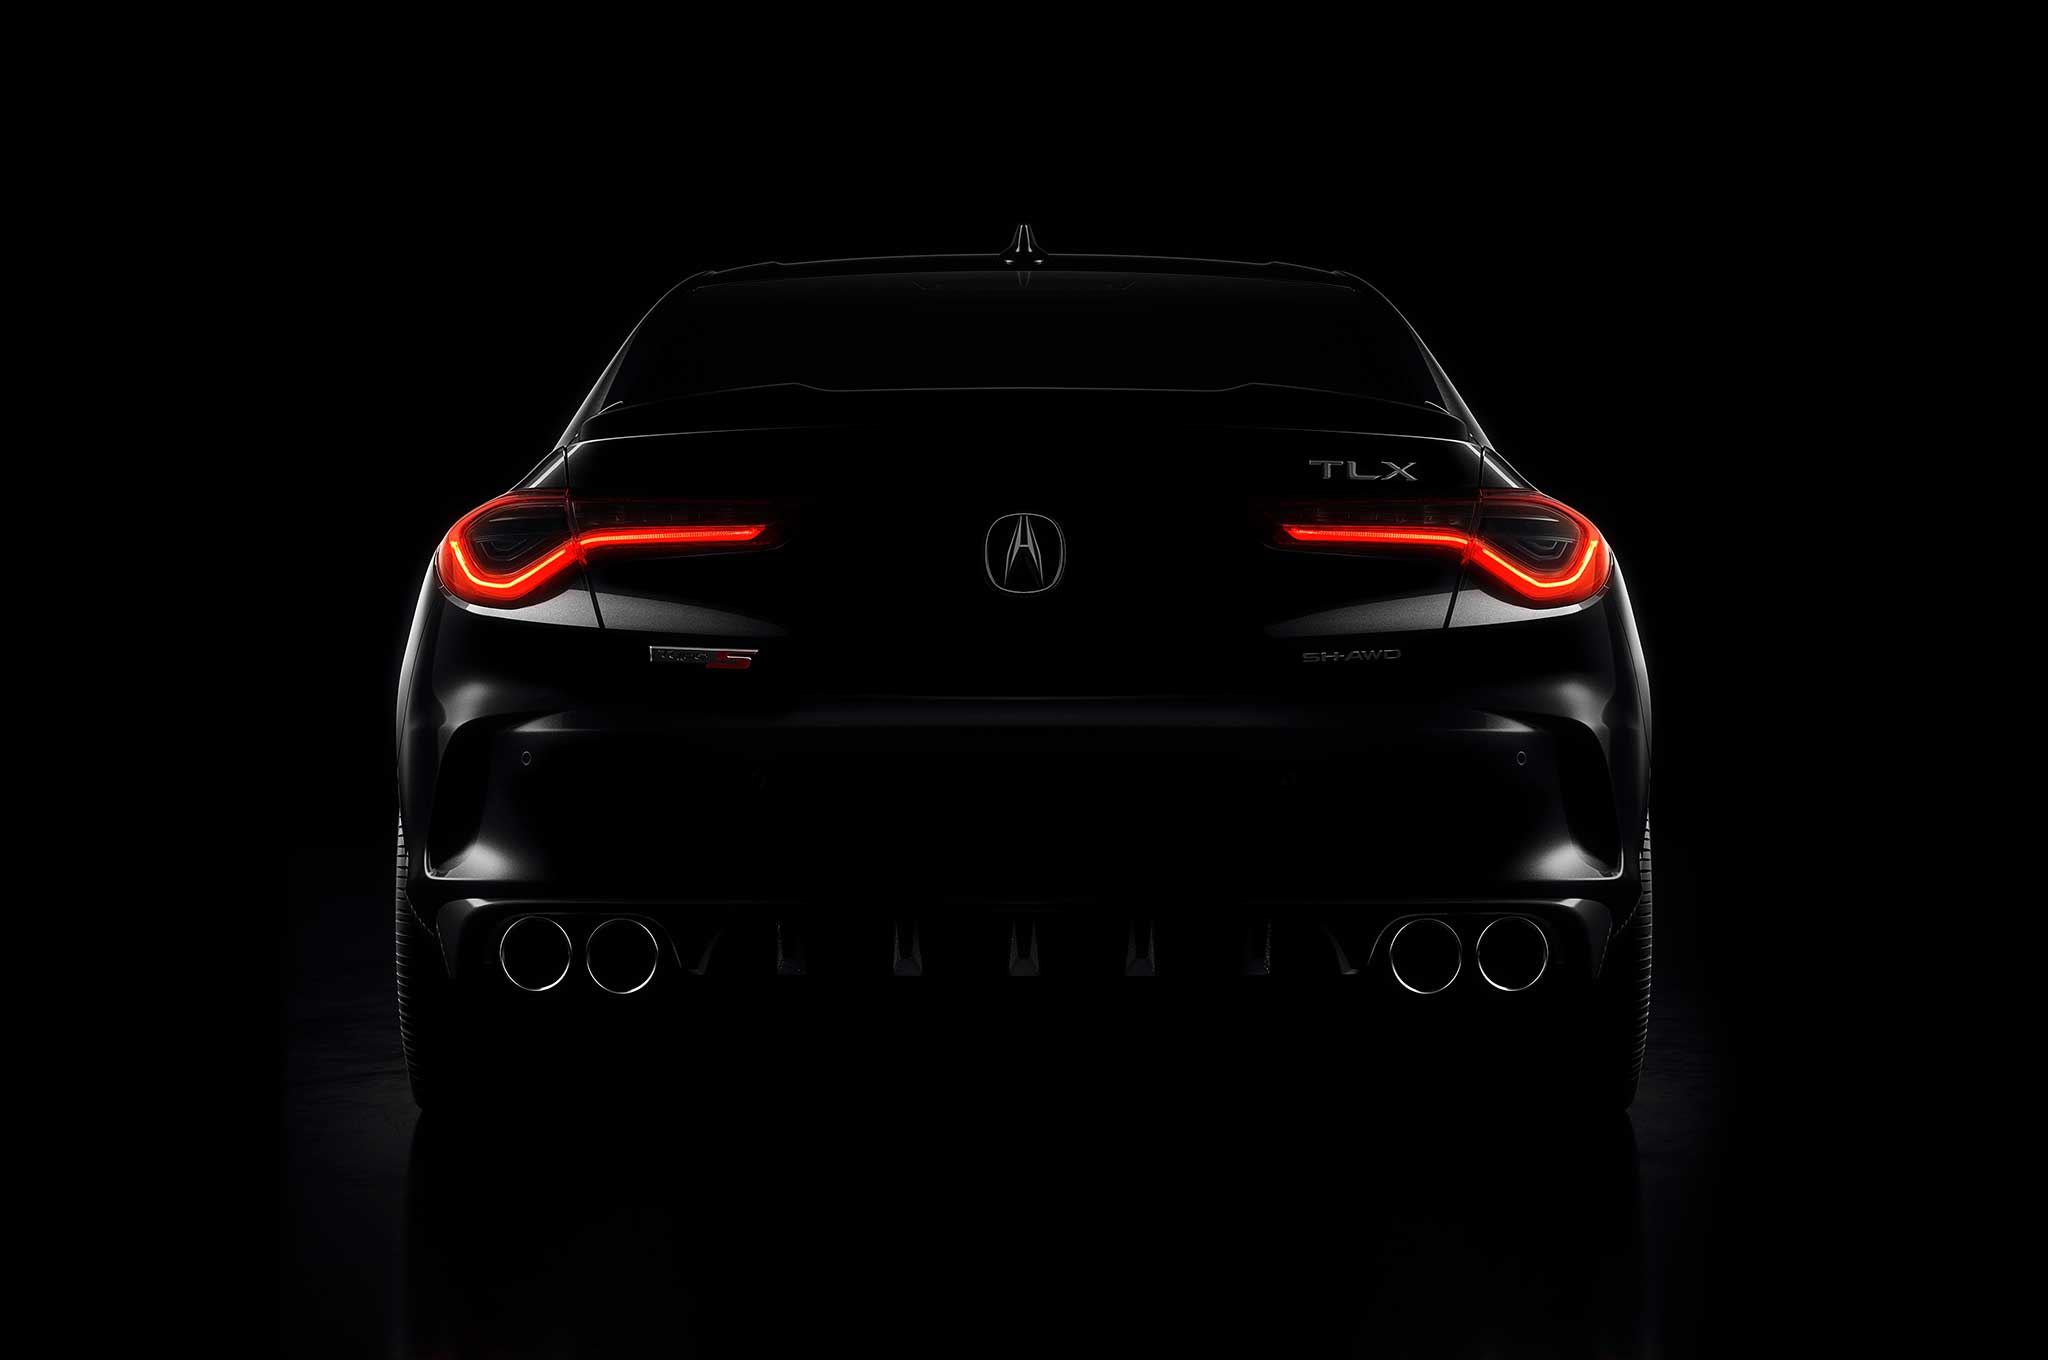 Acura Teases Booty Of The New Turbo V6 Awd 2021 Tlx